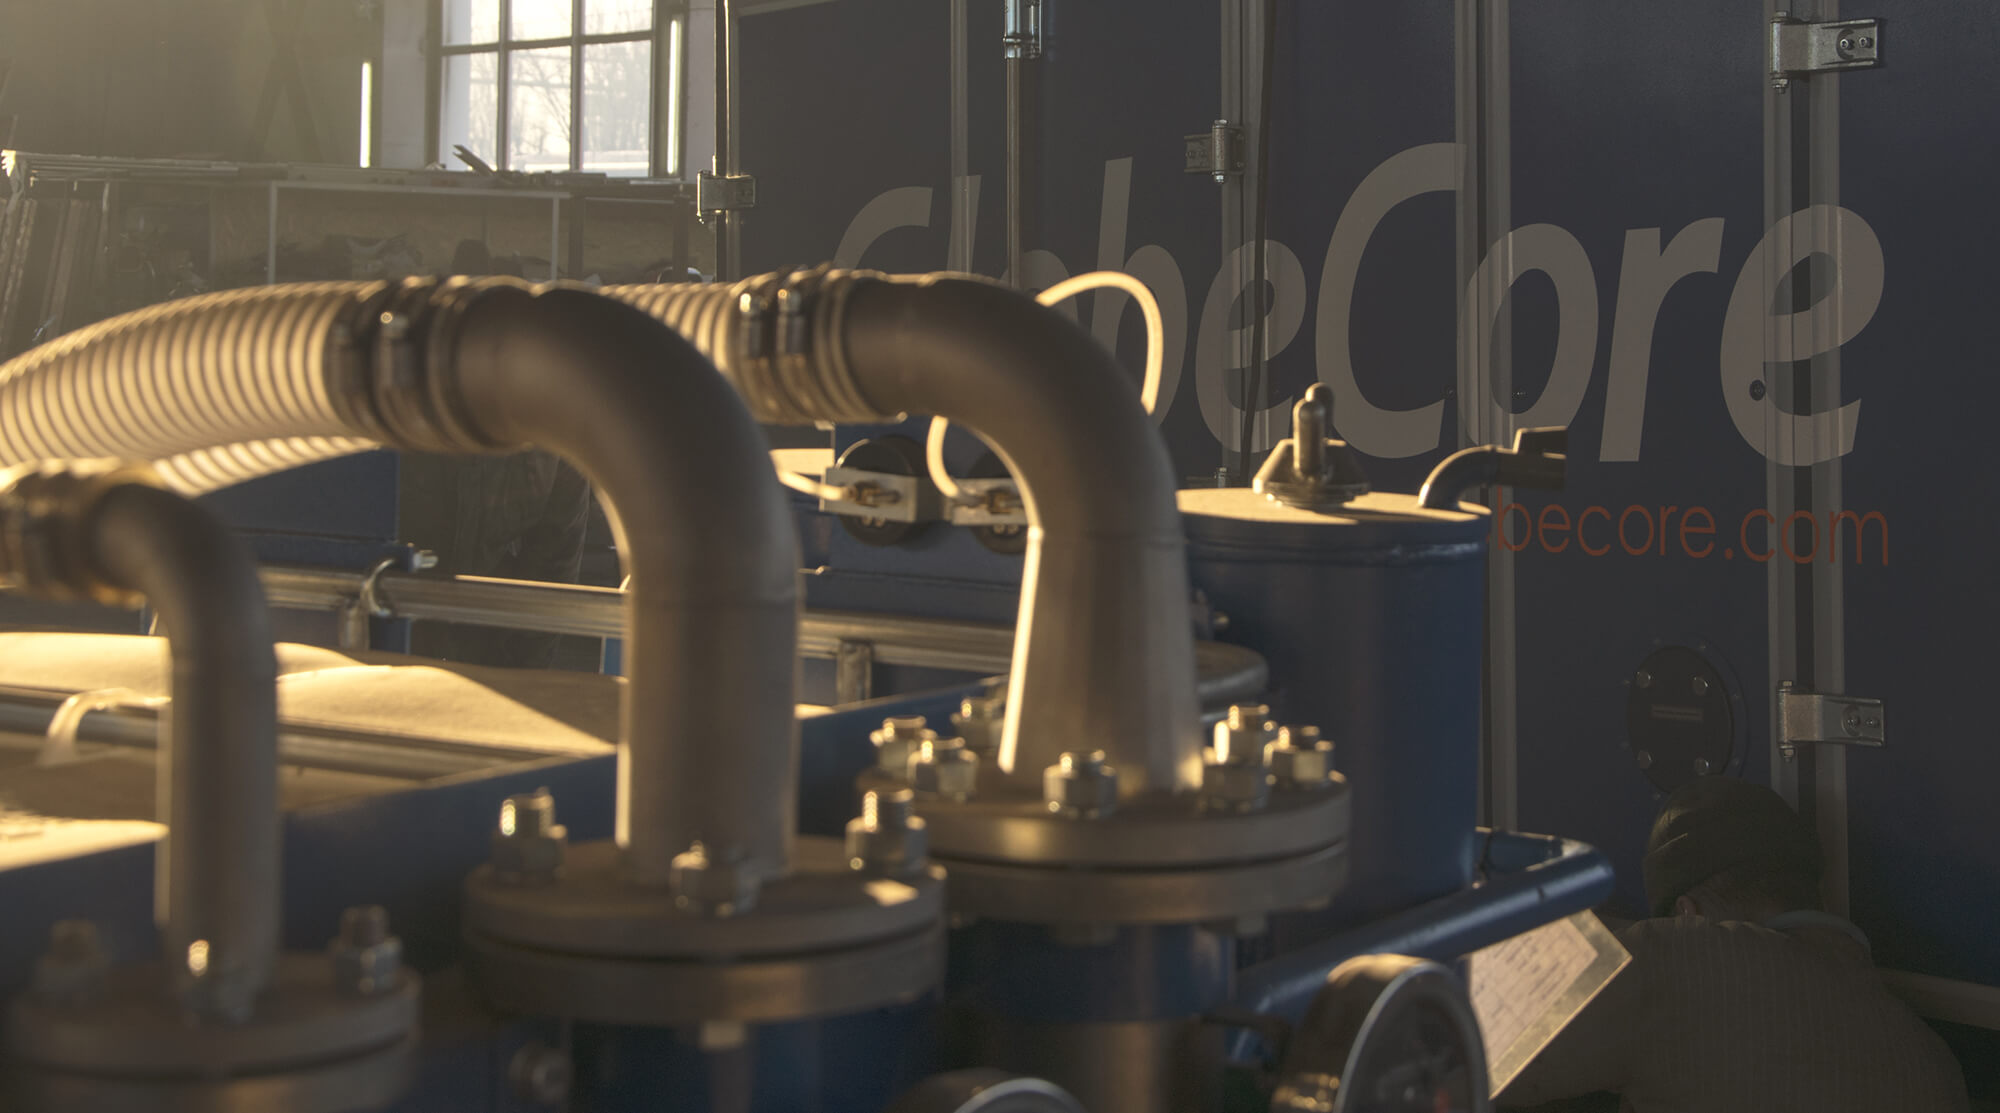 Oil Purification in Industrial Facilities